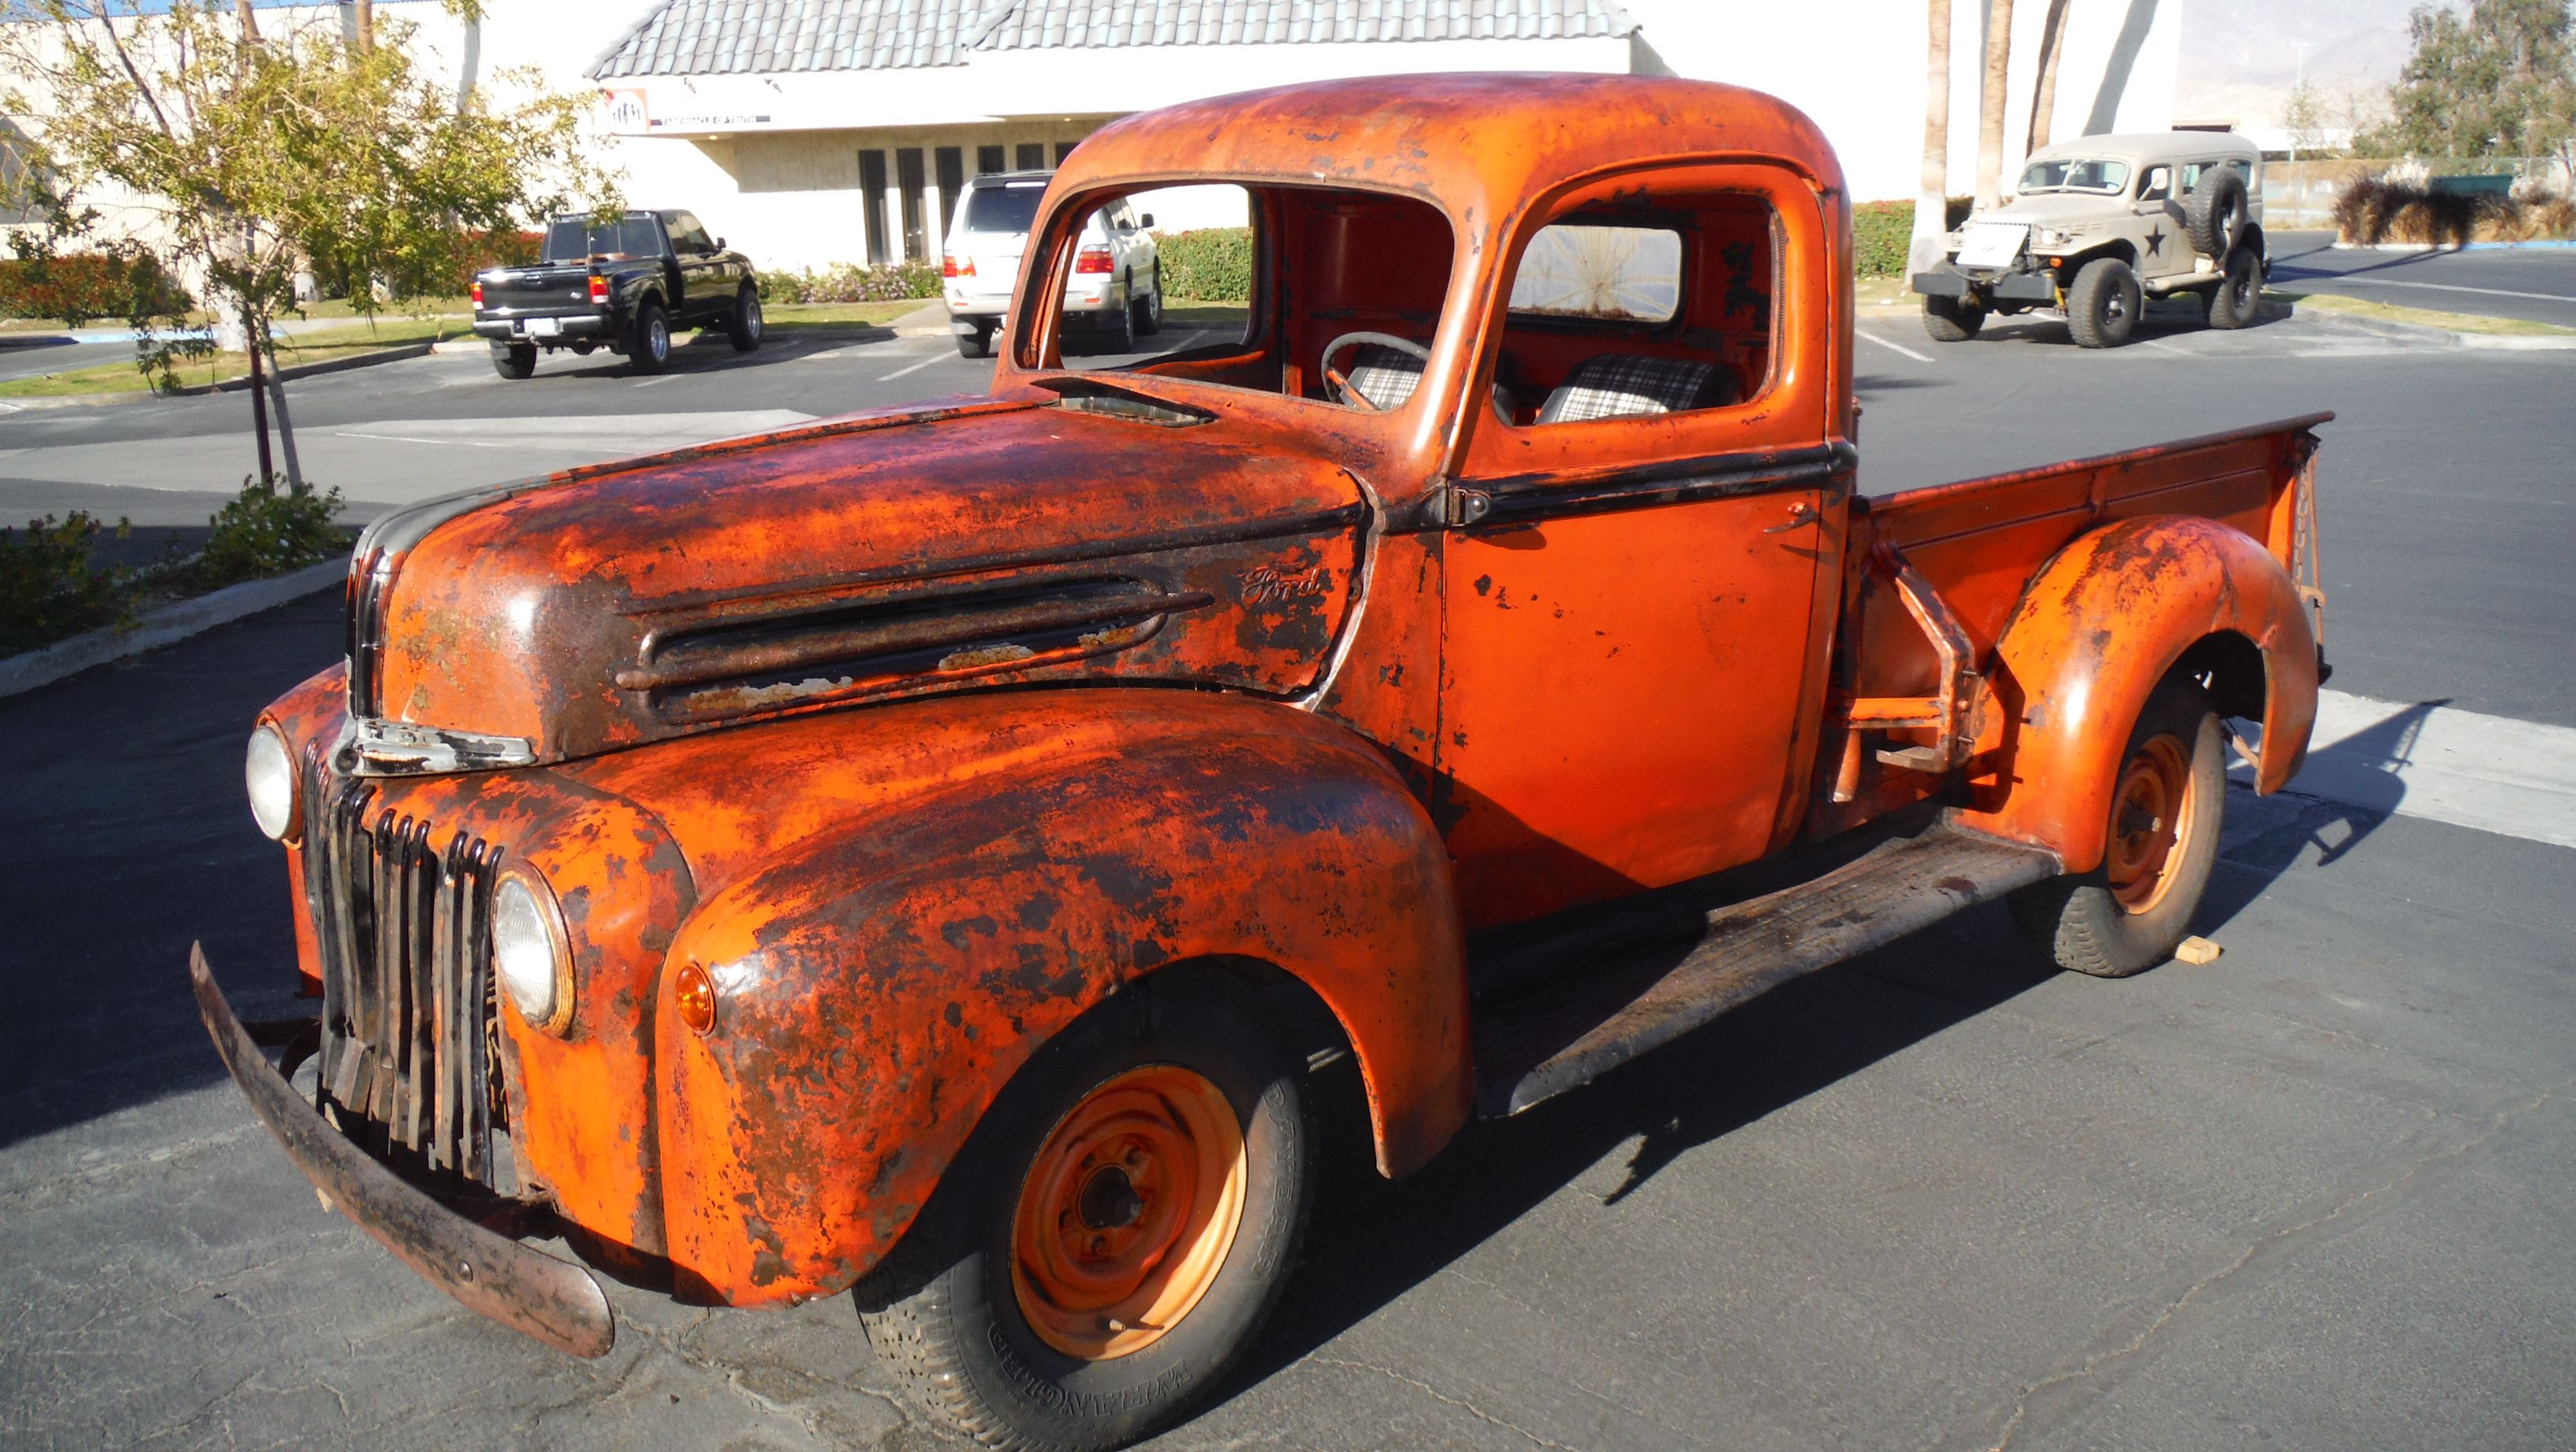 1946 Ford 1 2 Ton Pickup Rat Rod Later 6 Cyl Eng Not Running More Pics Available David 714 310 9934